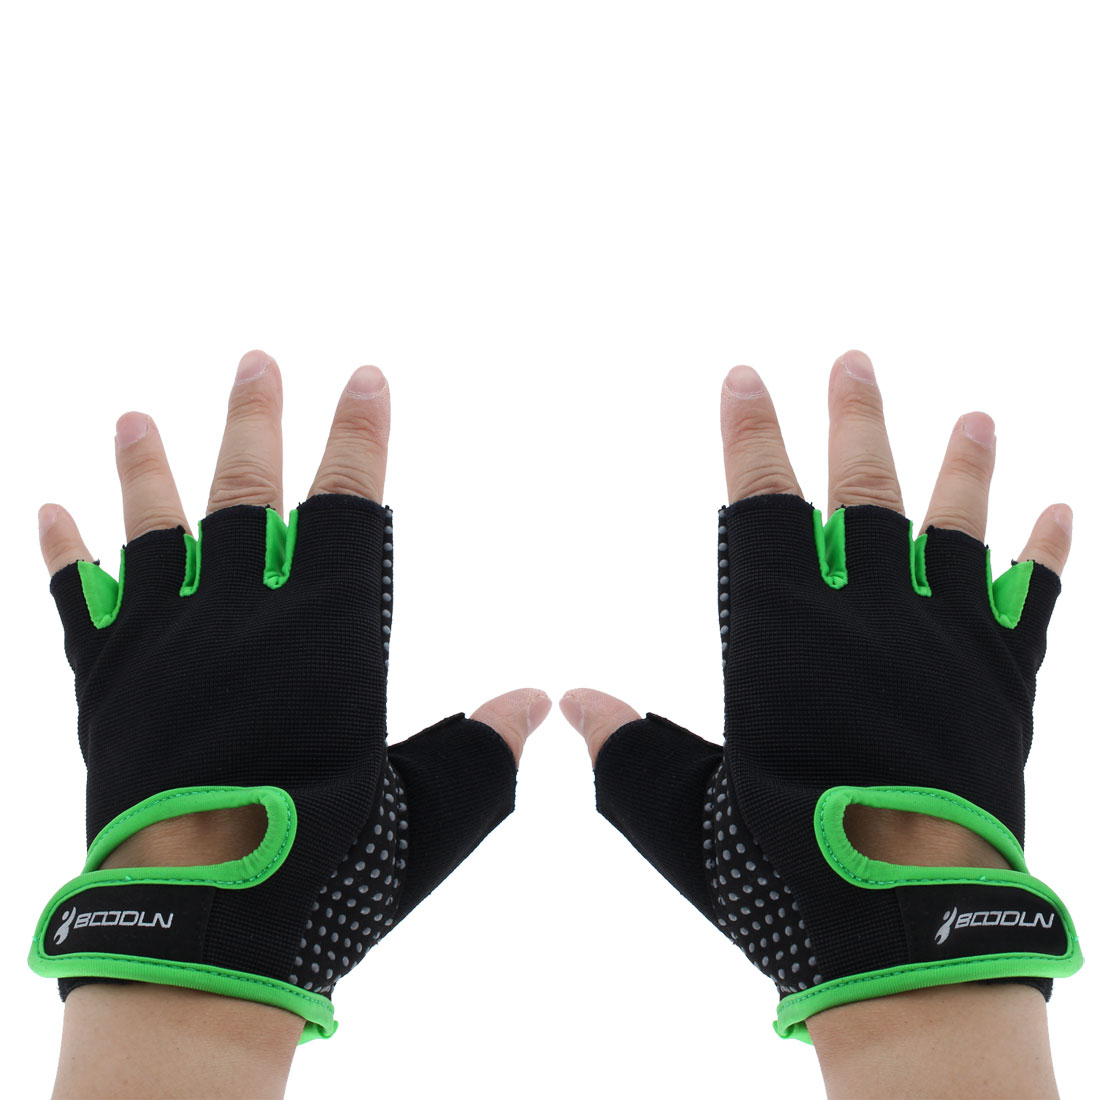 BOODUN Authorized Exercise Weight Biking Lifting Training Microfiber Non-slip Fitness Half Finger Gloves Green XL